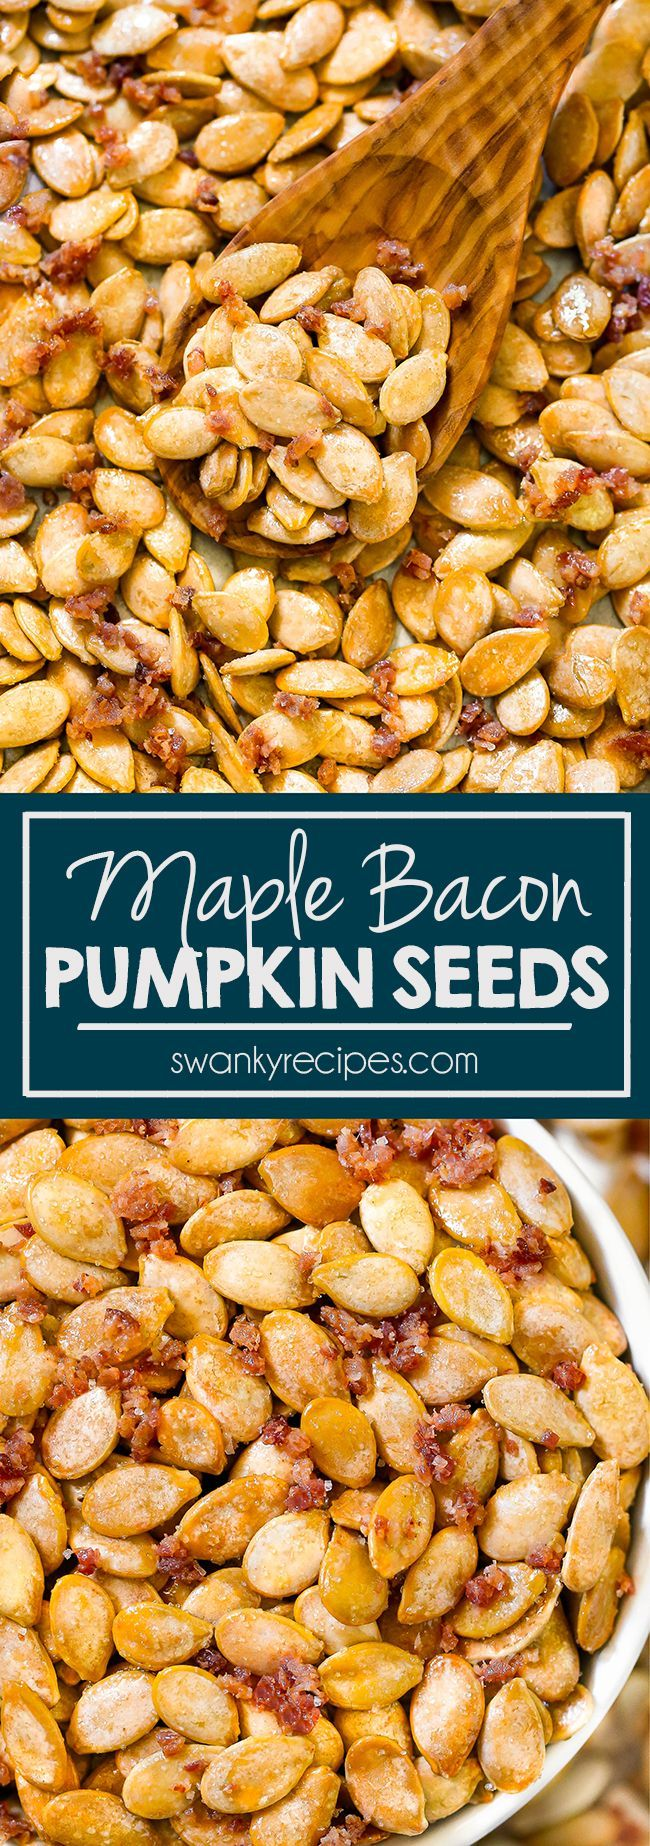 Maple Pumpkin Seeds with Bacon #roastedpumpkinseedsrecipe Maple Bacon Pumpkin Seeds recipe. A fun sweet and salty snack for Halloween with real maple syrup and bacon. #pumpkinseeds #pumpkinseedsrecipebaked